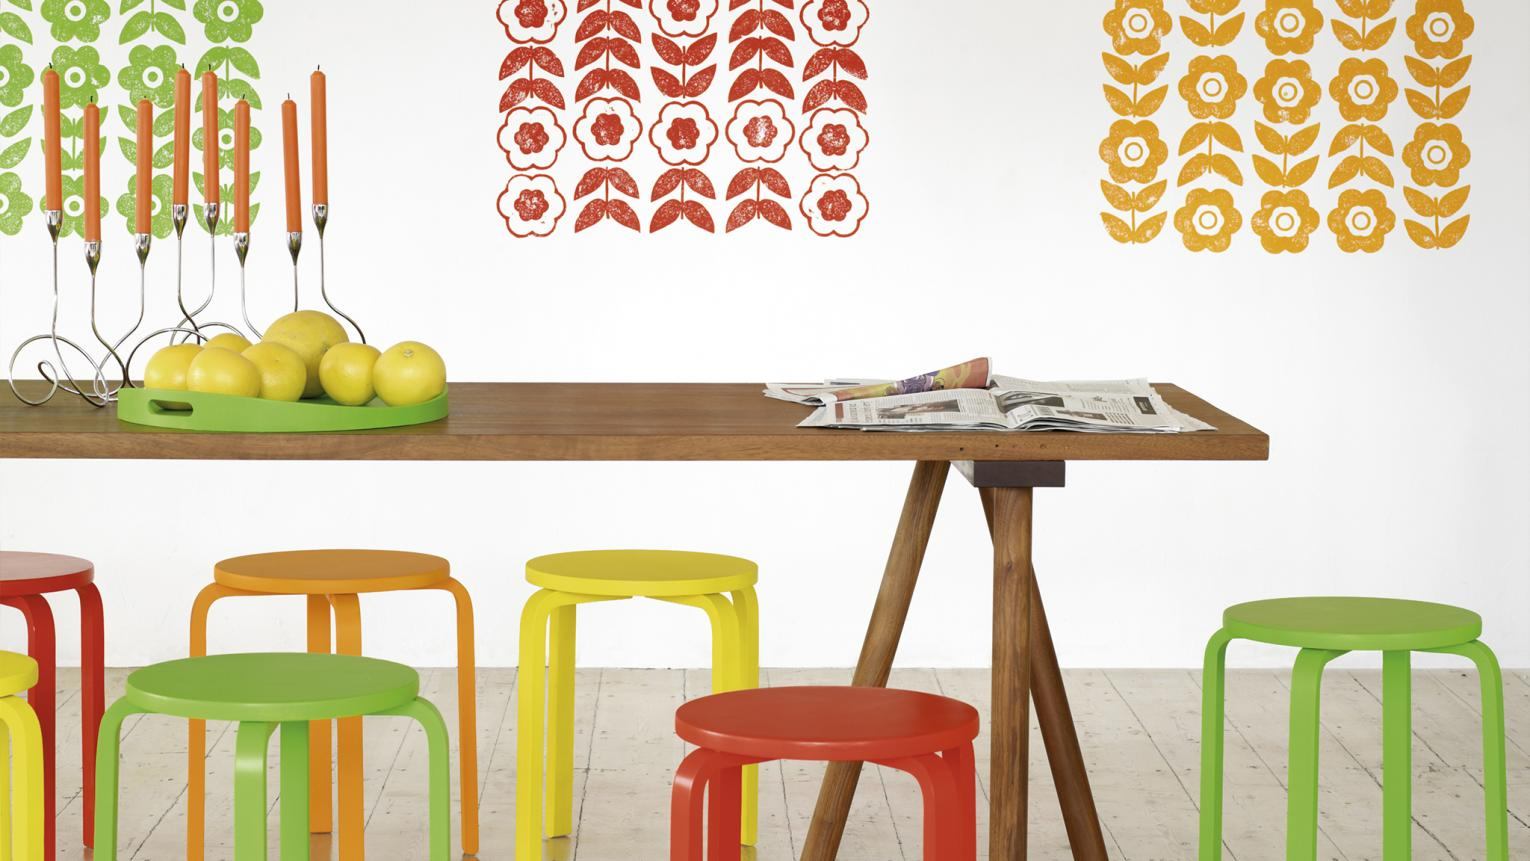 Paint green, red and orange patterns to liven up neutral dining room walls.